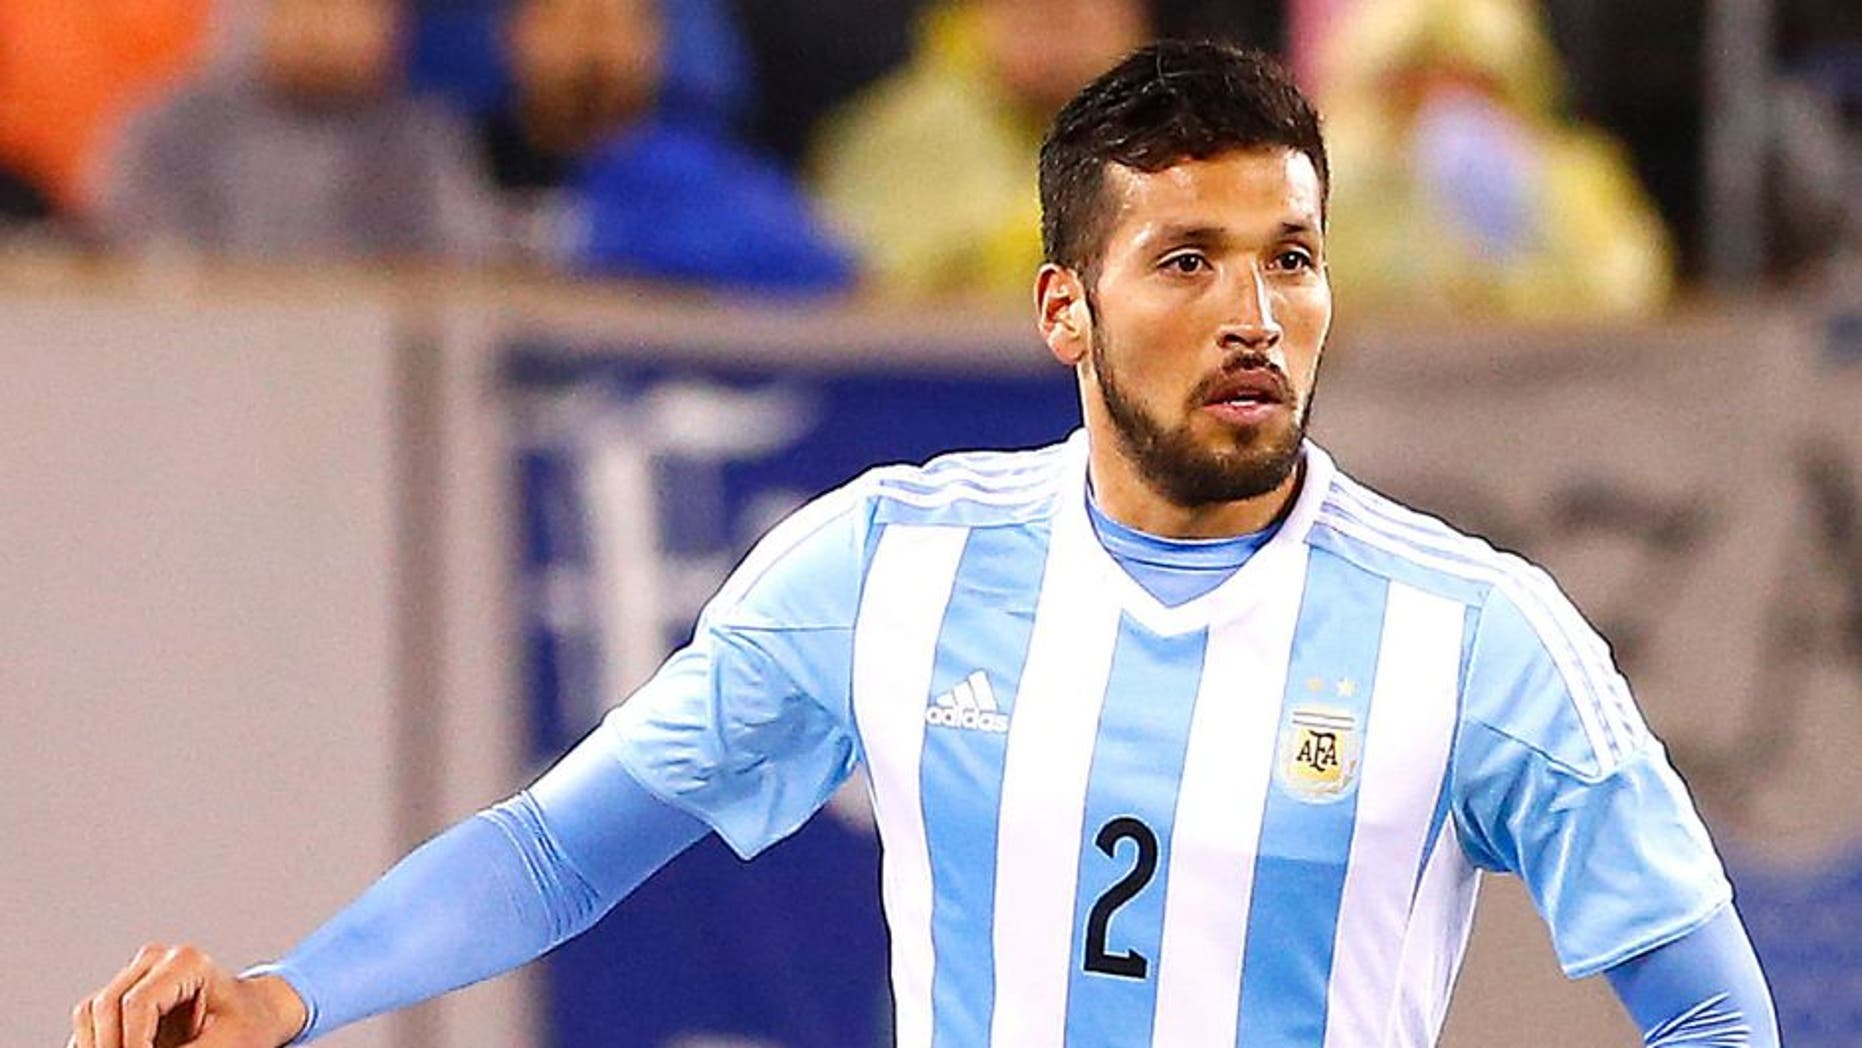 EAST RUTHERFORD, UNITED STATES - MARCH 31: Ezequiel Garay #2 of Argentina moves the ball against Ecuador in the second half during an international friendly match between Argentina and Ecuador at Metlife Stadium on March 31, 2015 in East Rutherford, United States. Argentina defeated Ecuador 2-1. (Photo by Rich Schultz/LatinContent/Getty Images)